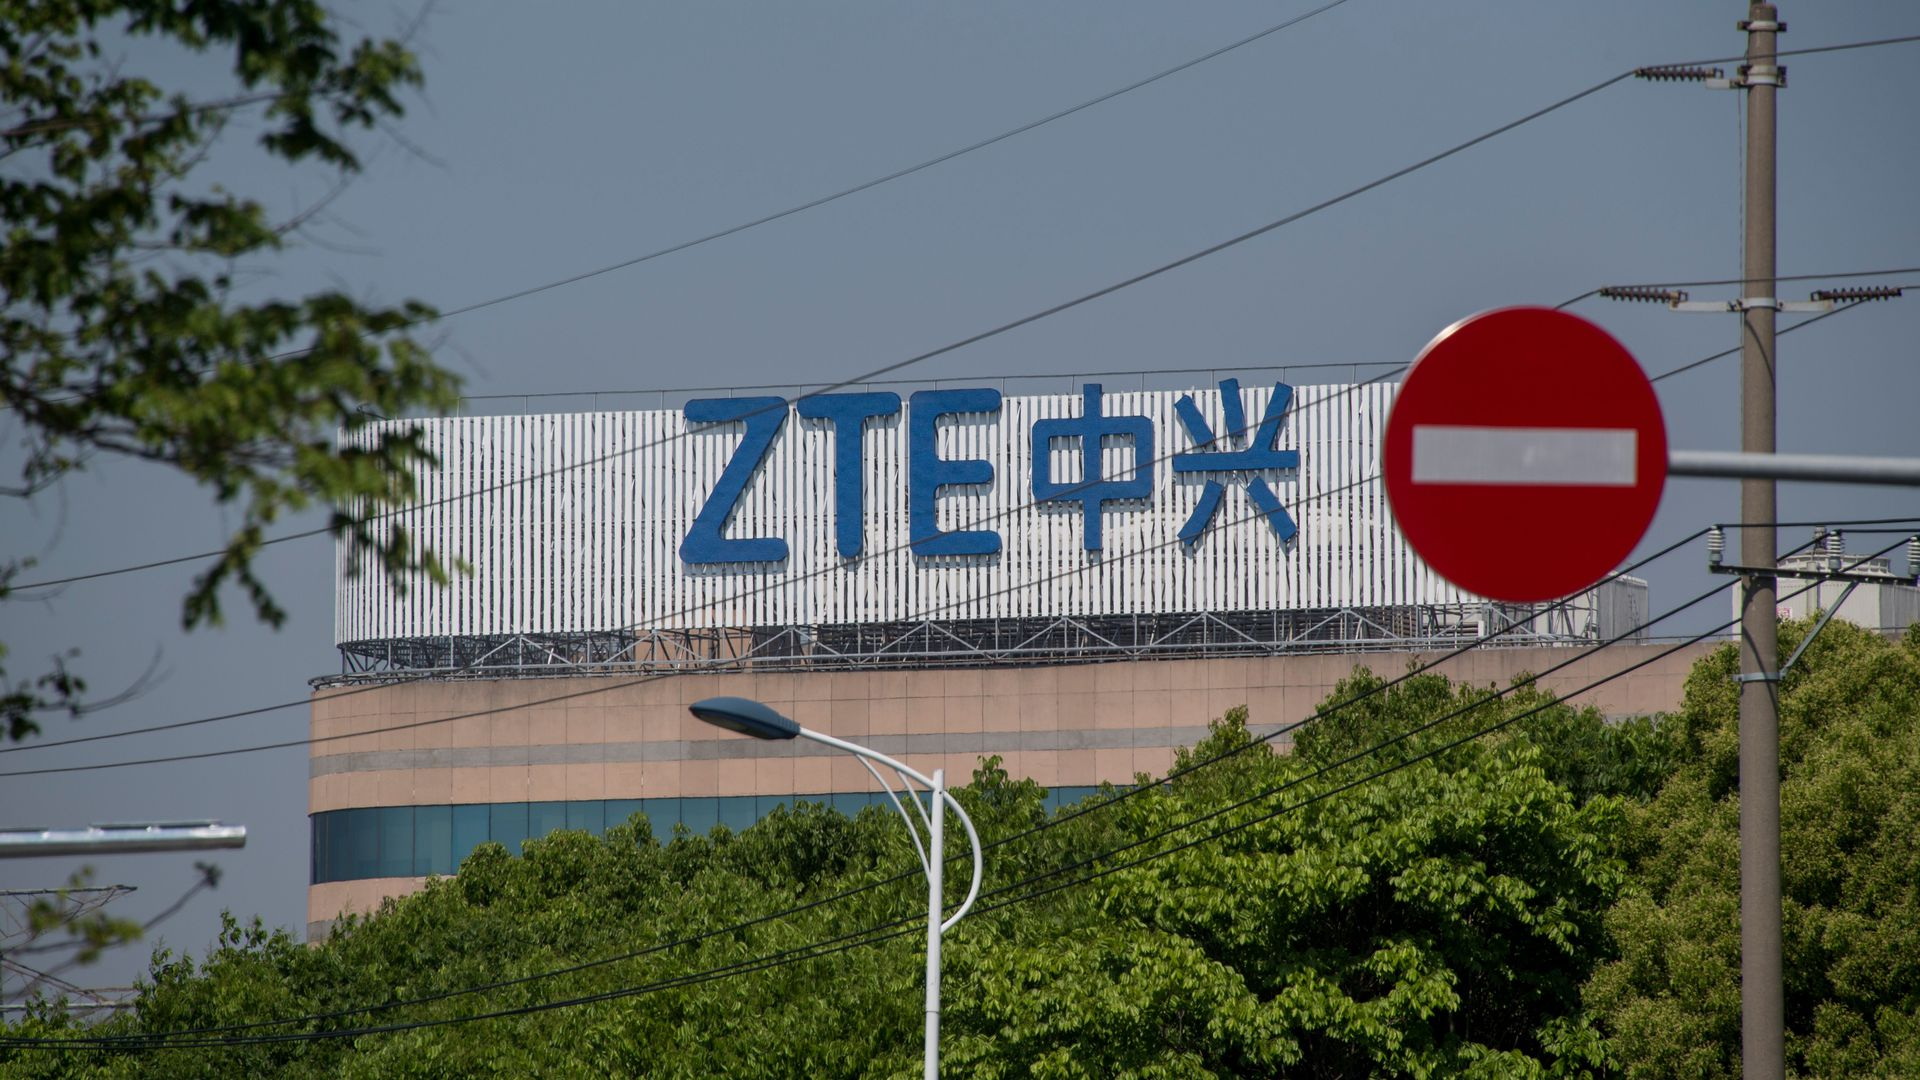 ZTE billboard by roadside